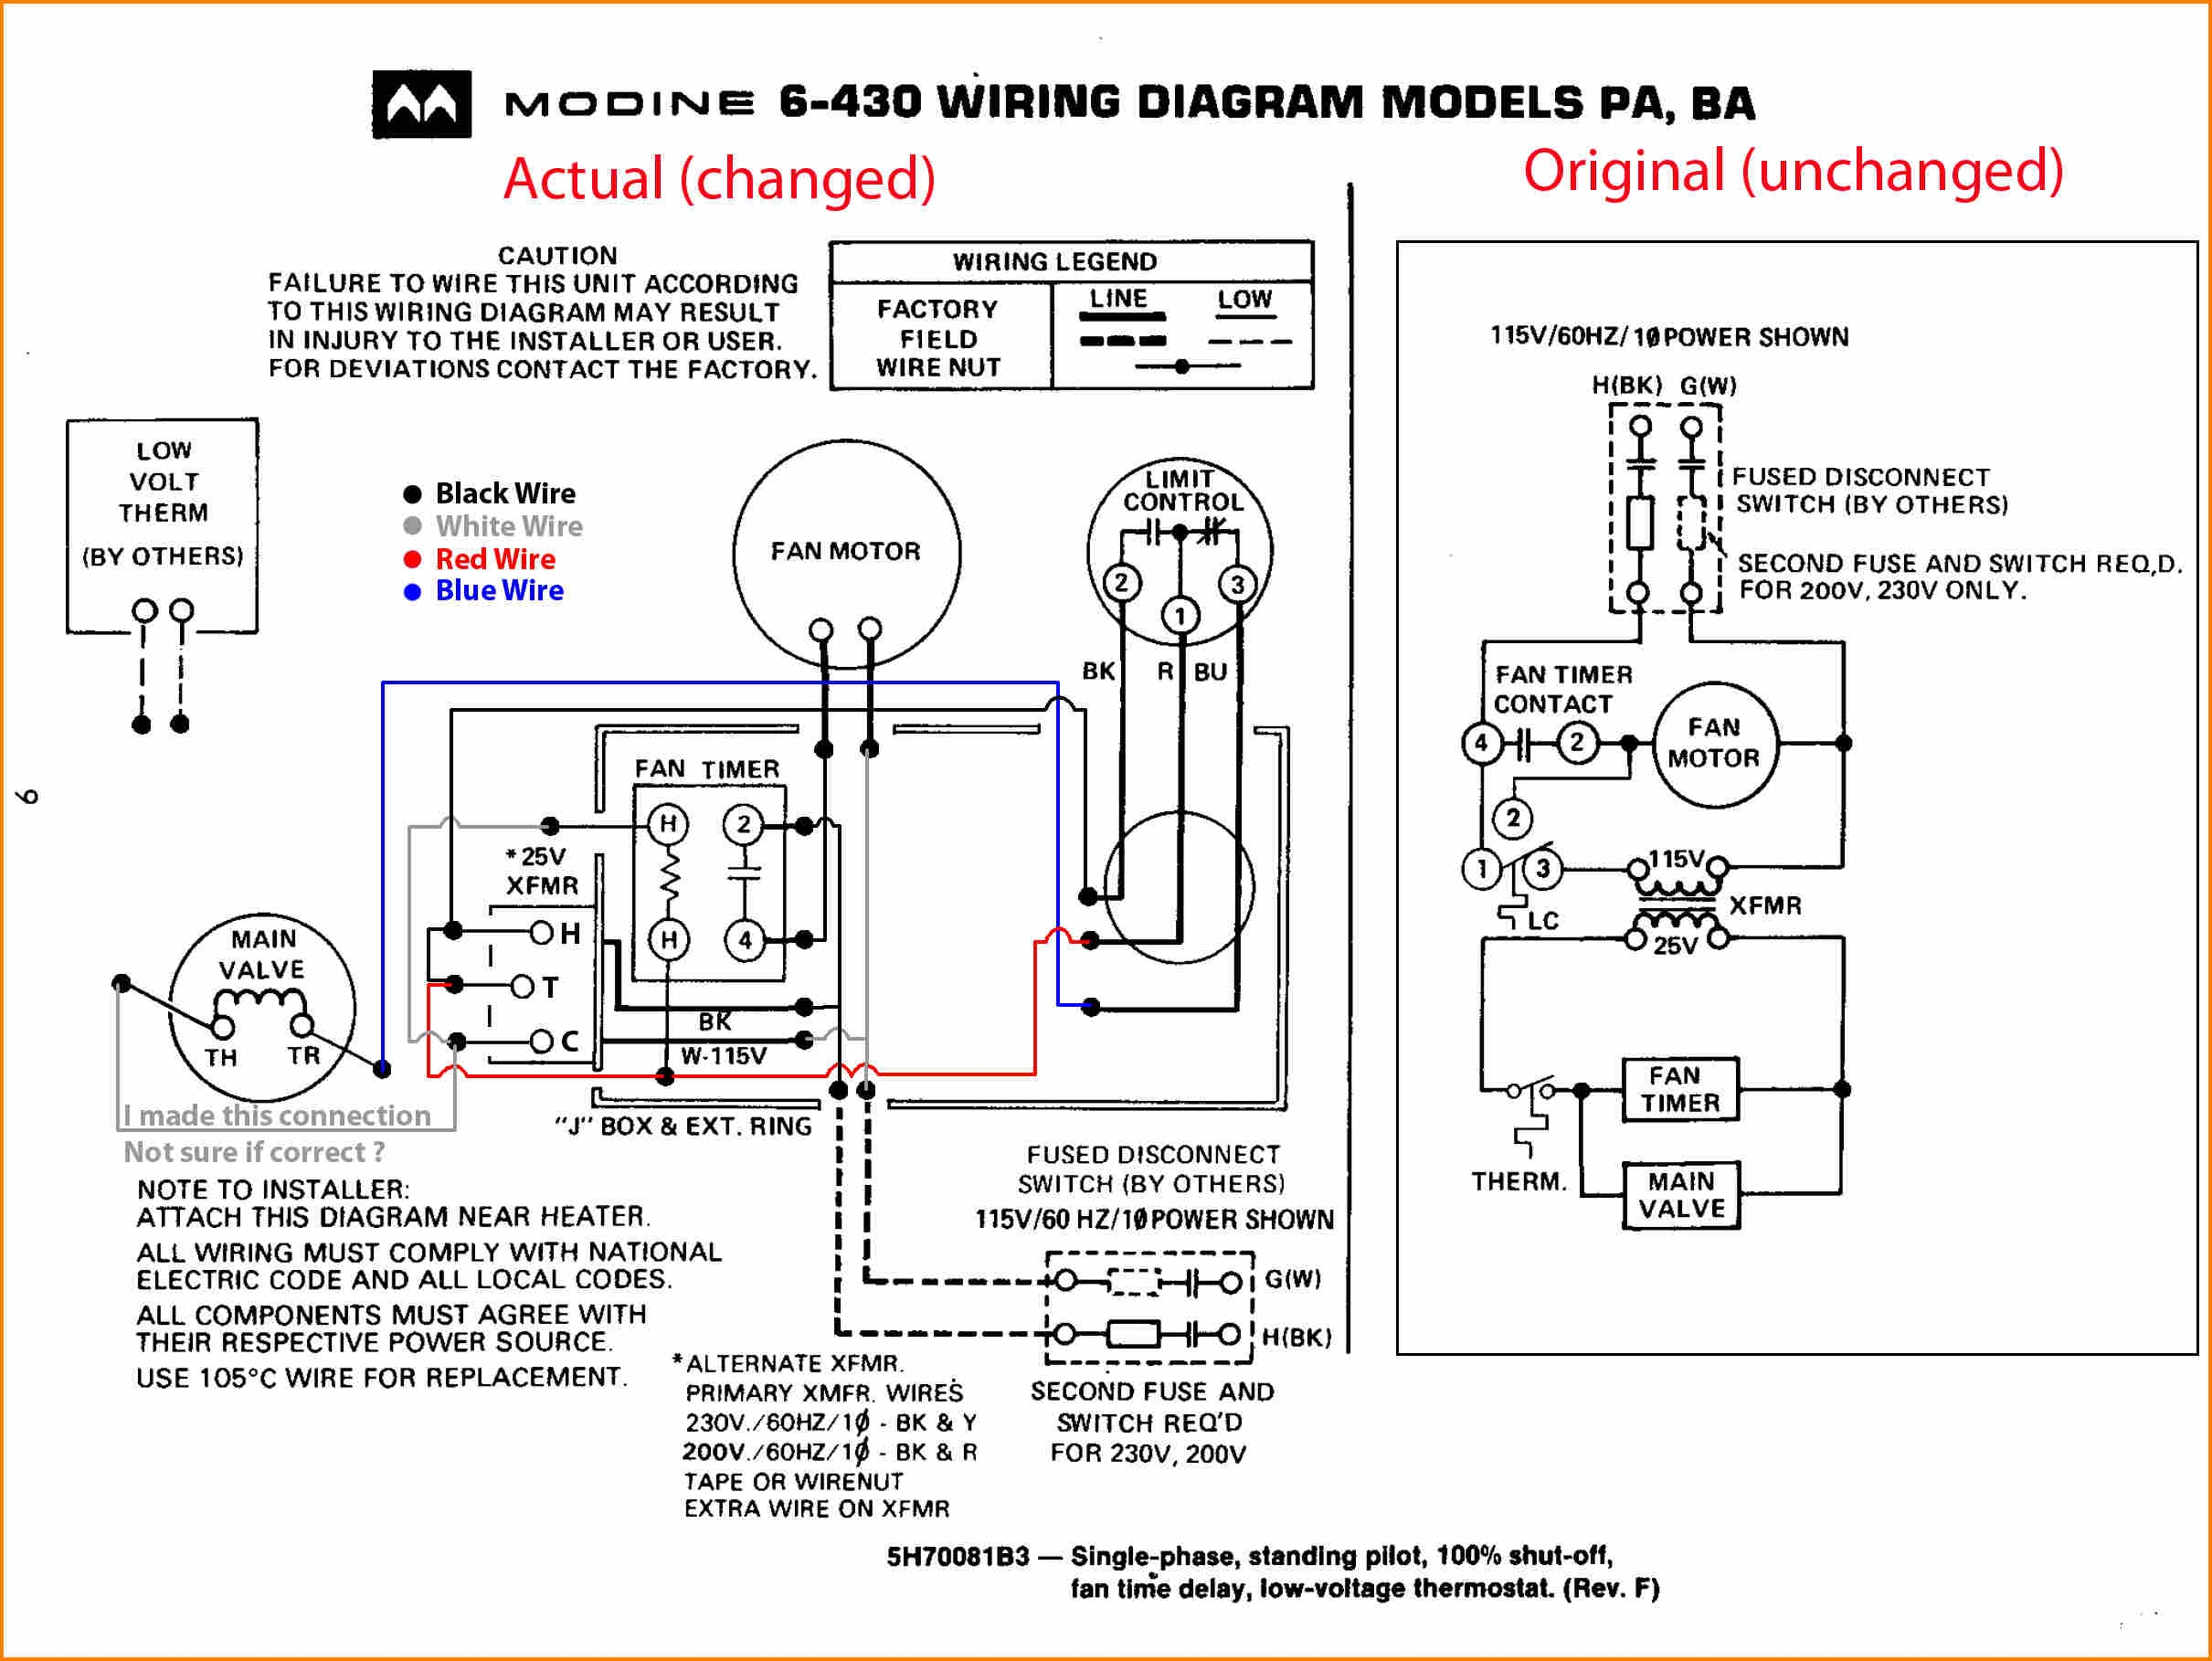 Gas Motor Diagram Wiring Database Combustible Engine Ge Furnace Diagrams How A Gasoline Works